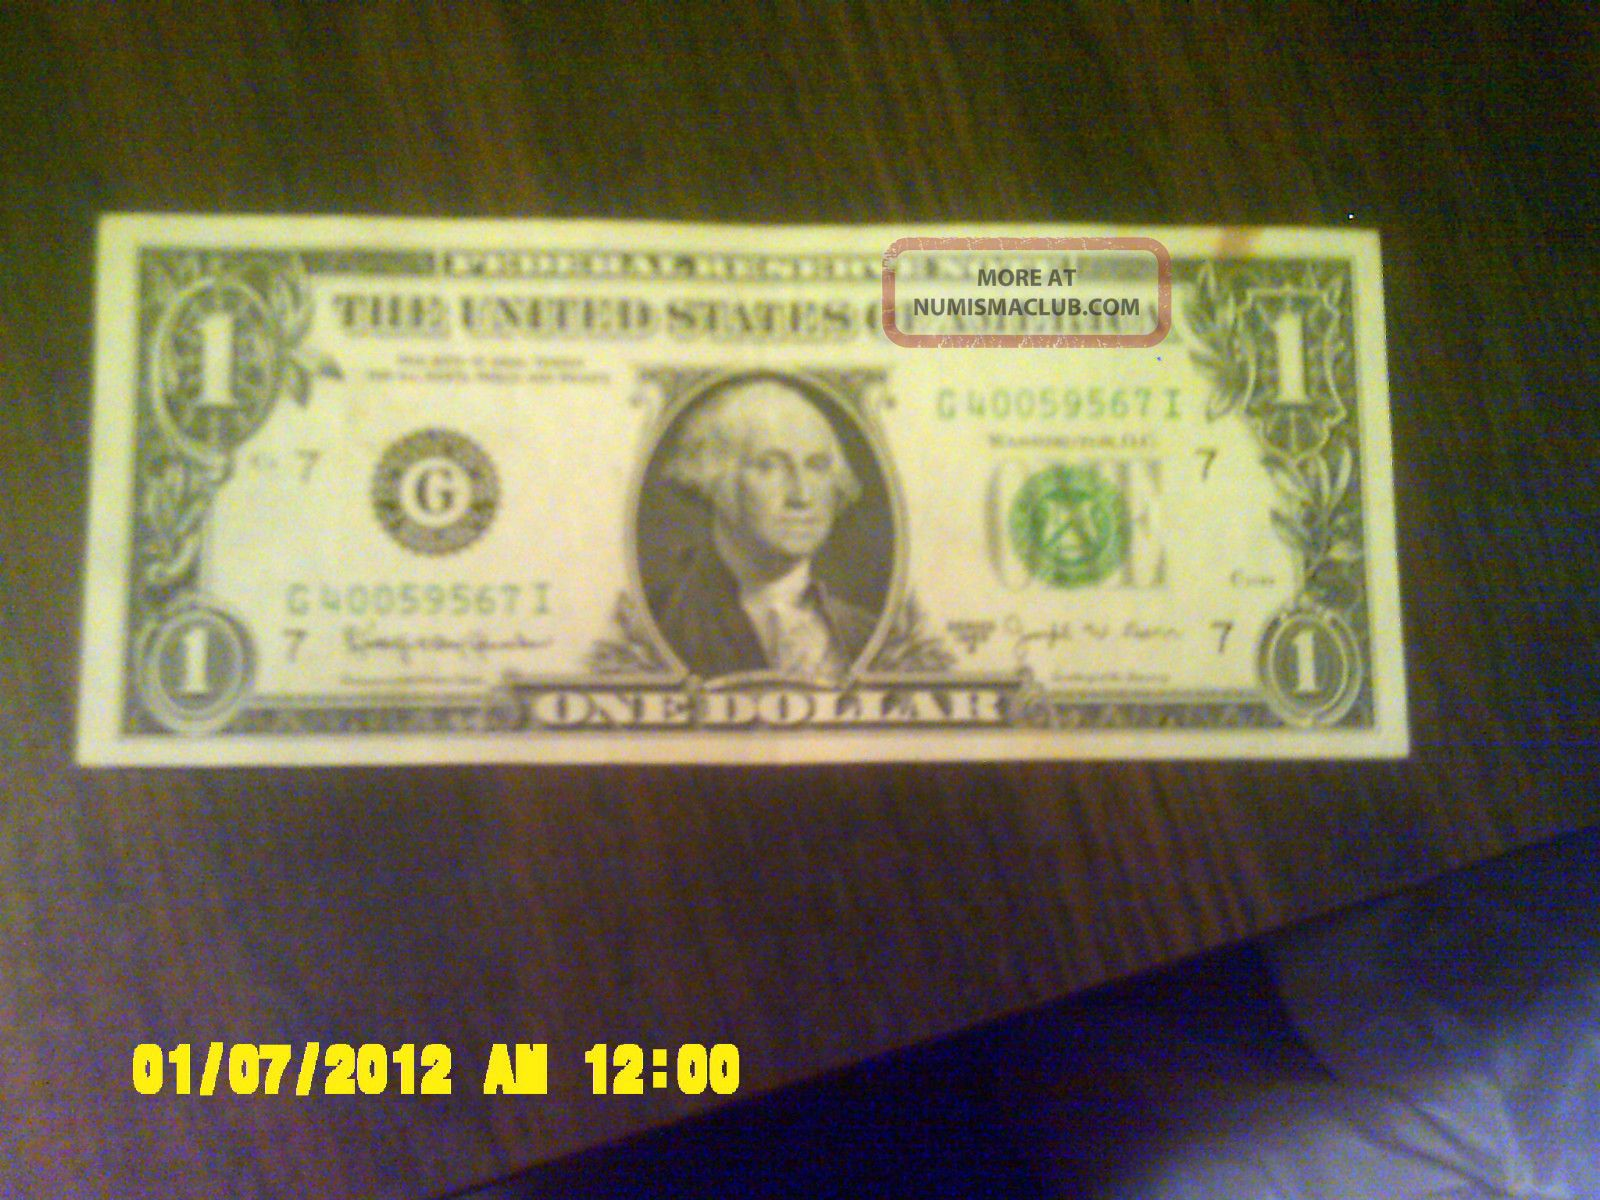 Uncirculated 1974 One Dollar Federal Reserve Note Serial G40059567i Chicago Small Size Notes photo